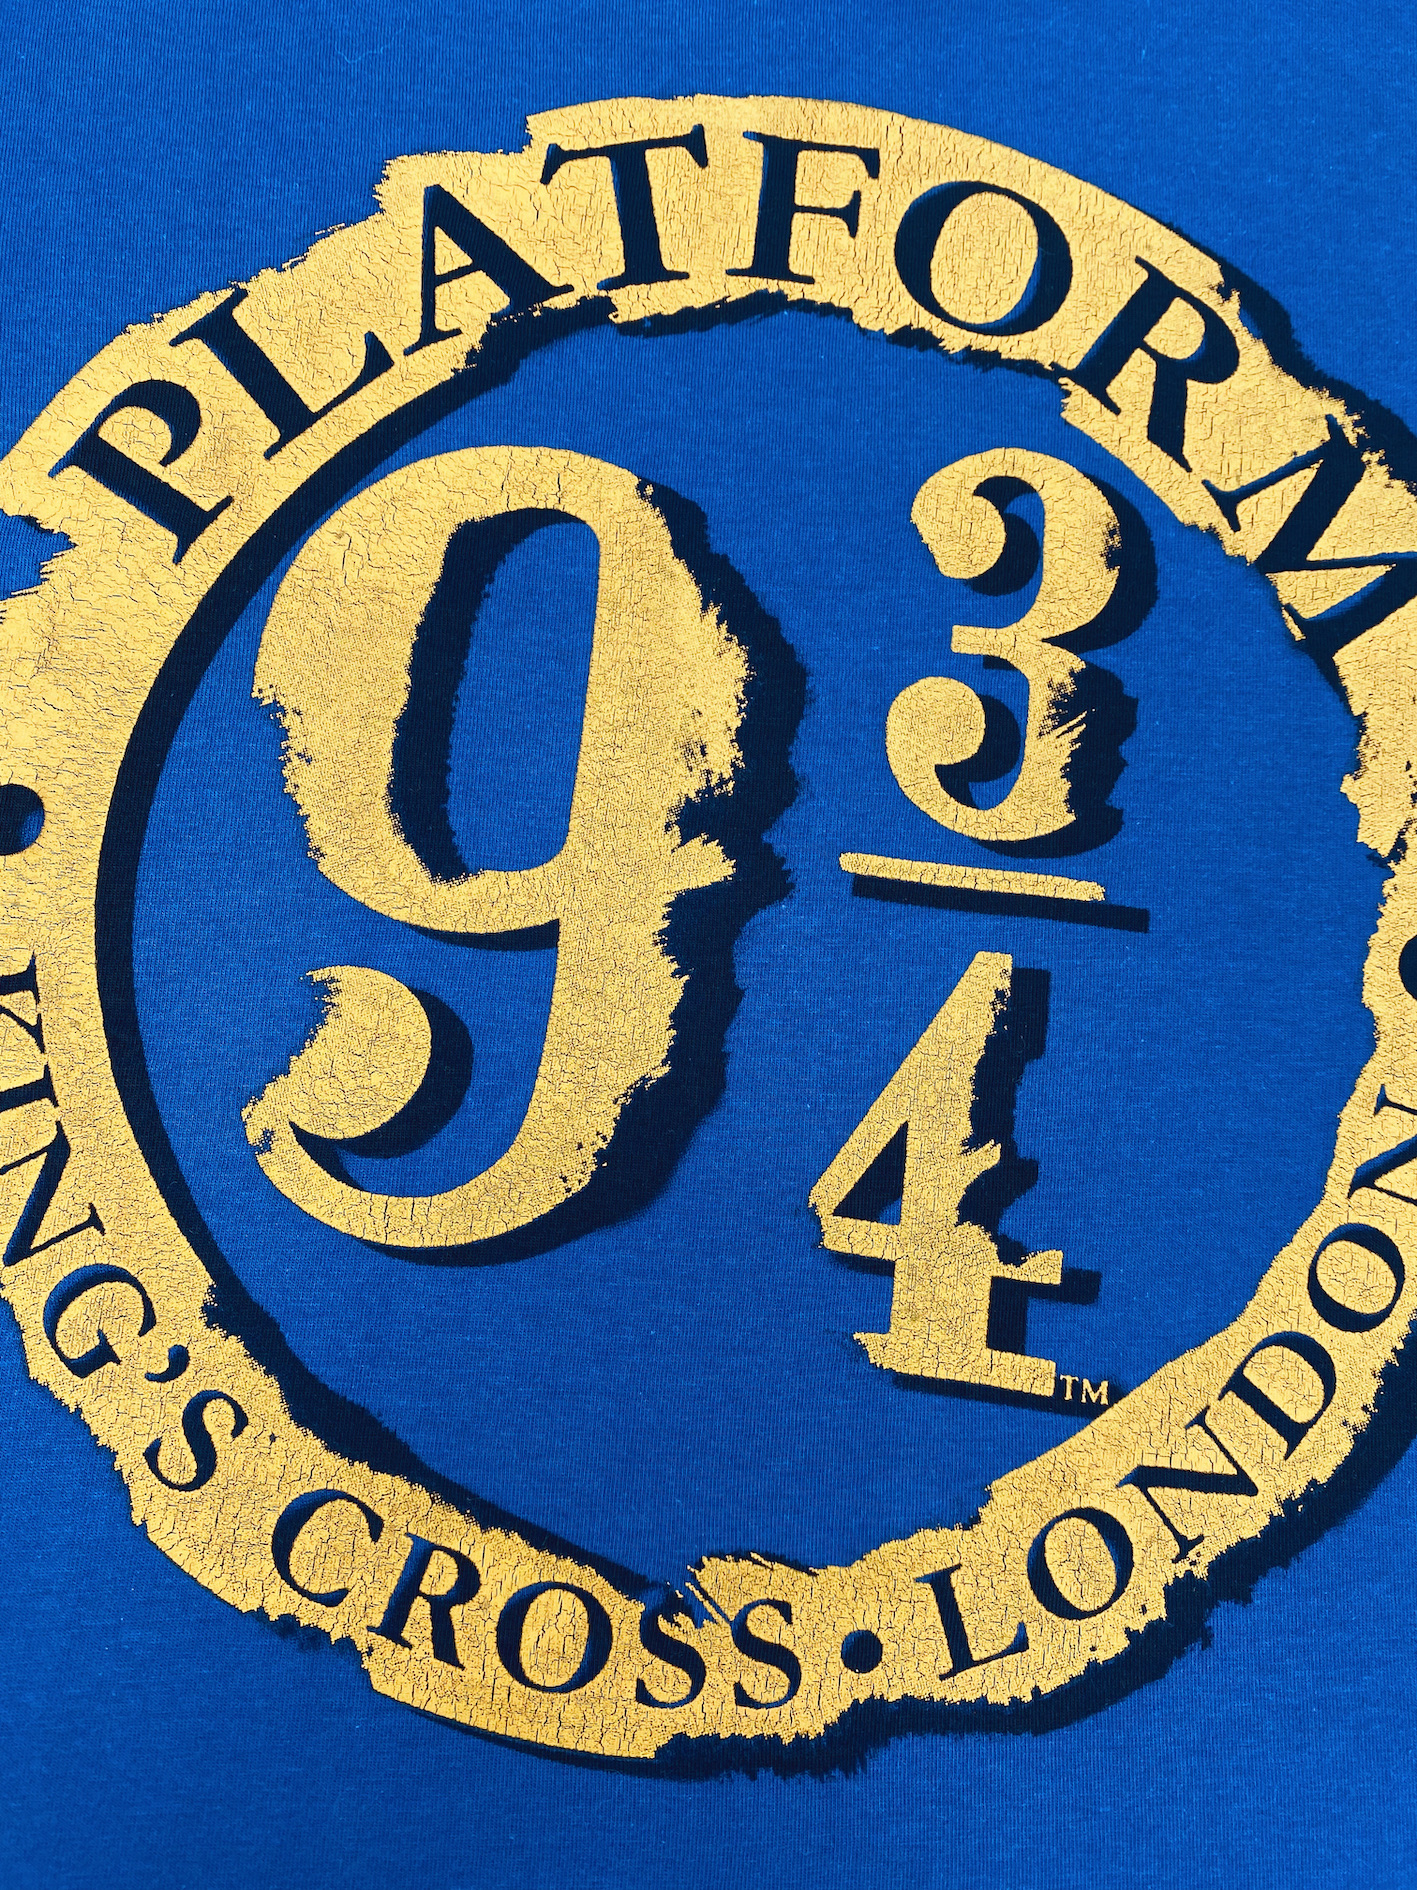 Cracking inks used on a t-shirt for Platform 9 3:4 by Paul Brsitow